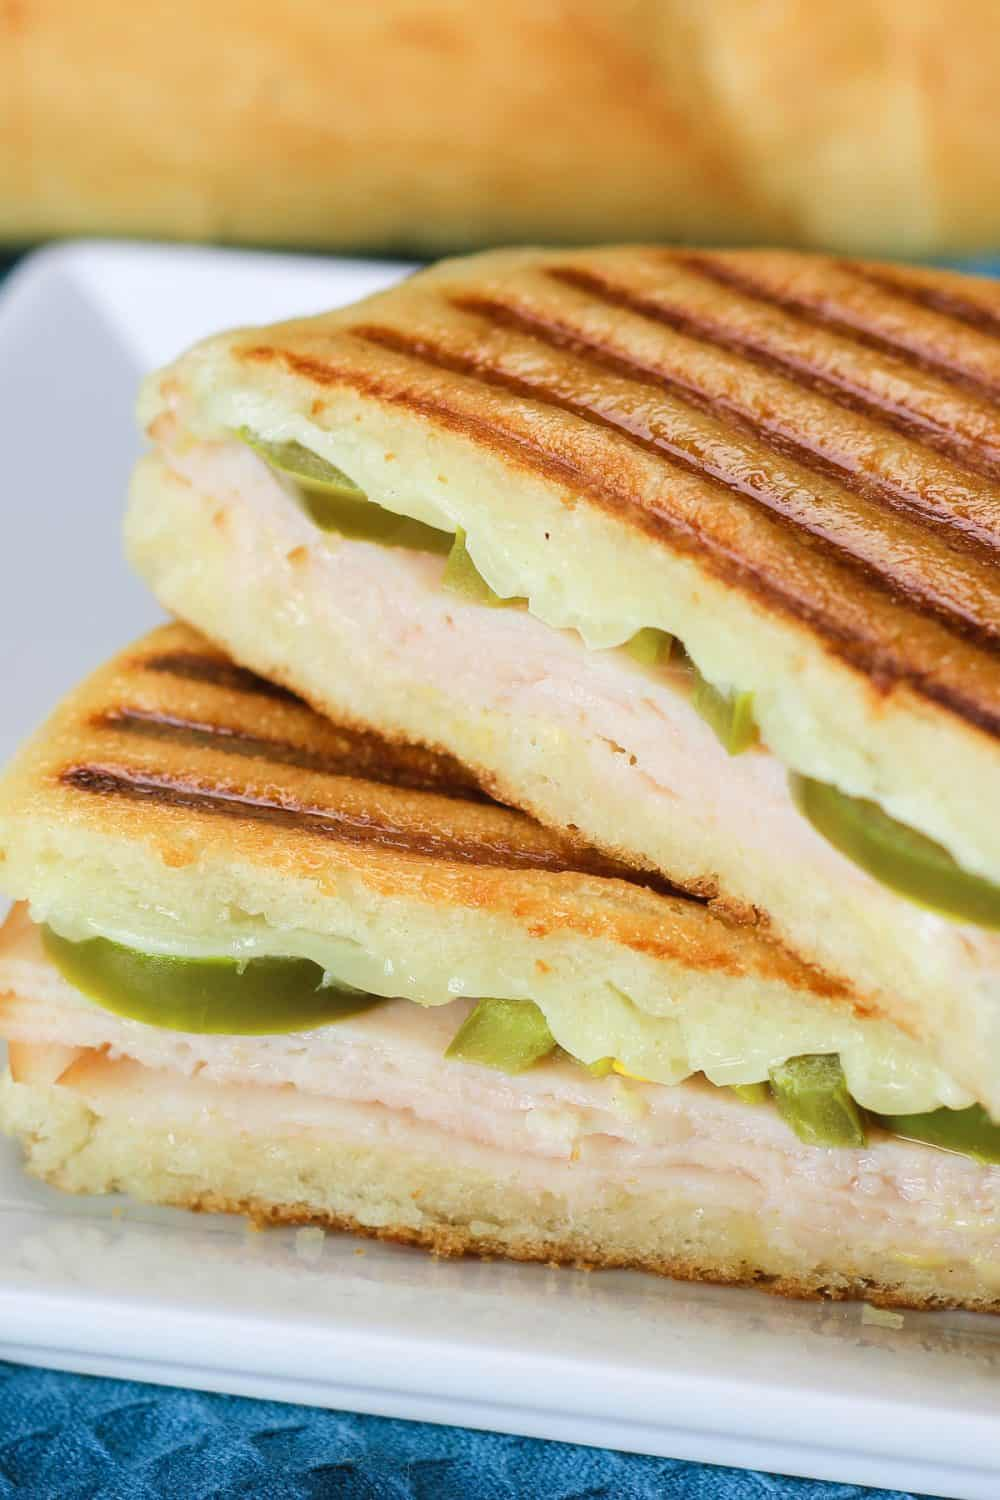 Close up picture showing a sliced turkey panini recipe on a white plate that is sitting on a blue cloth with fresh bread in the background